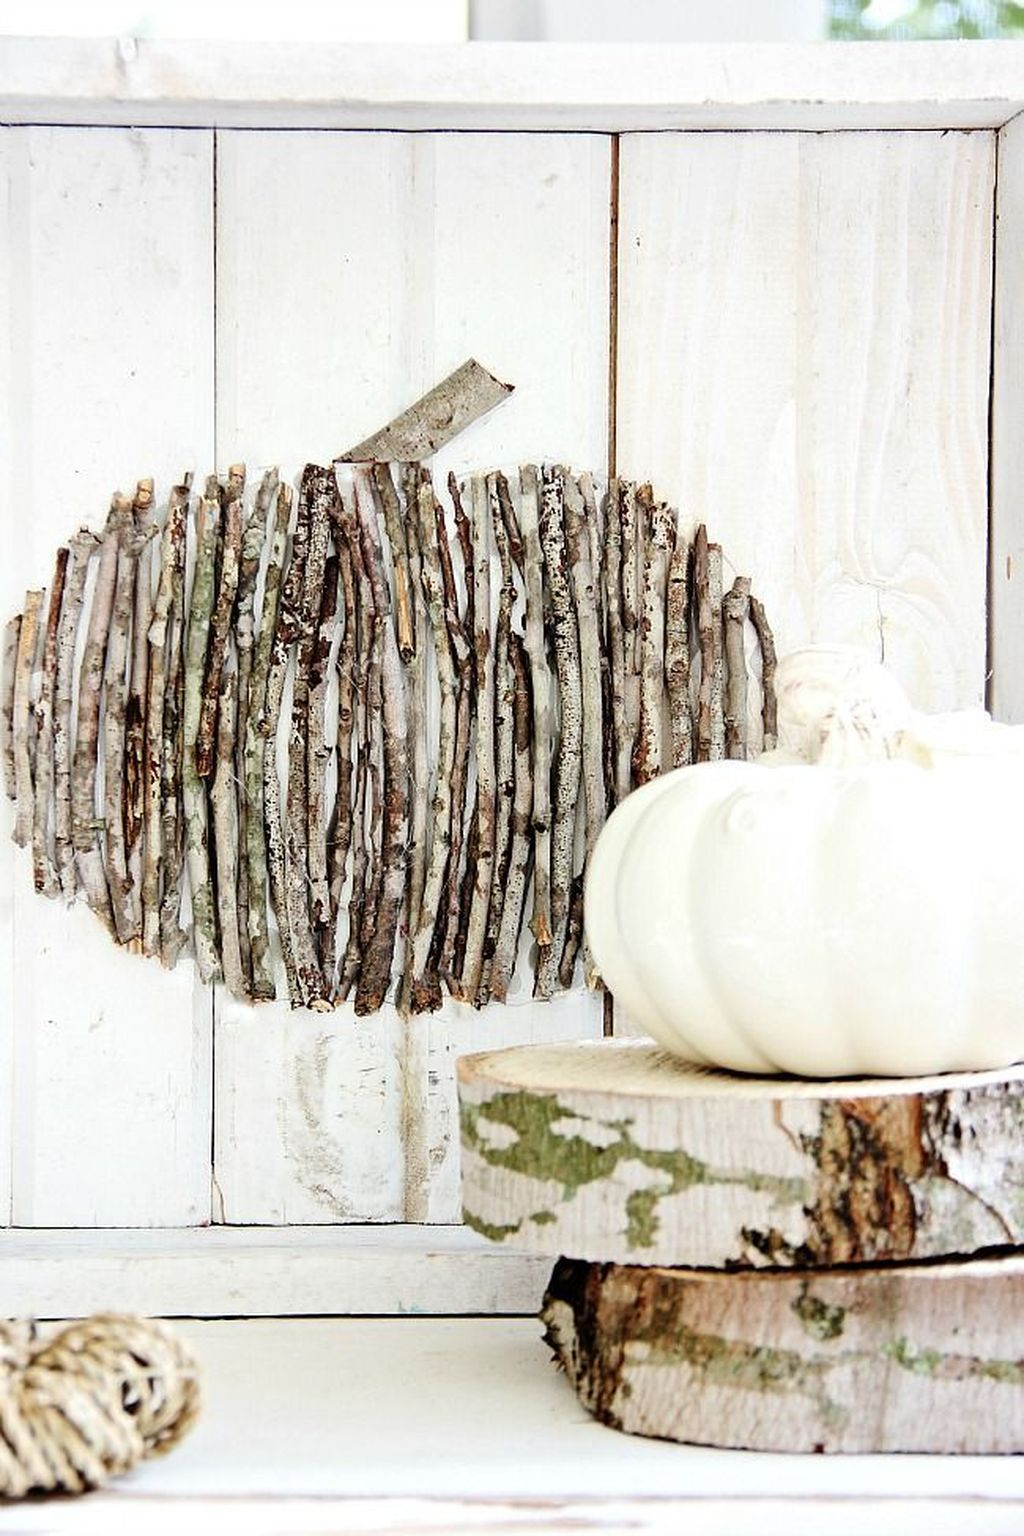 DIY pumpkin craft idea for farmhouse kitchens. a pumpkin shape is formed using different sizes of sticks